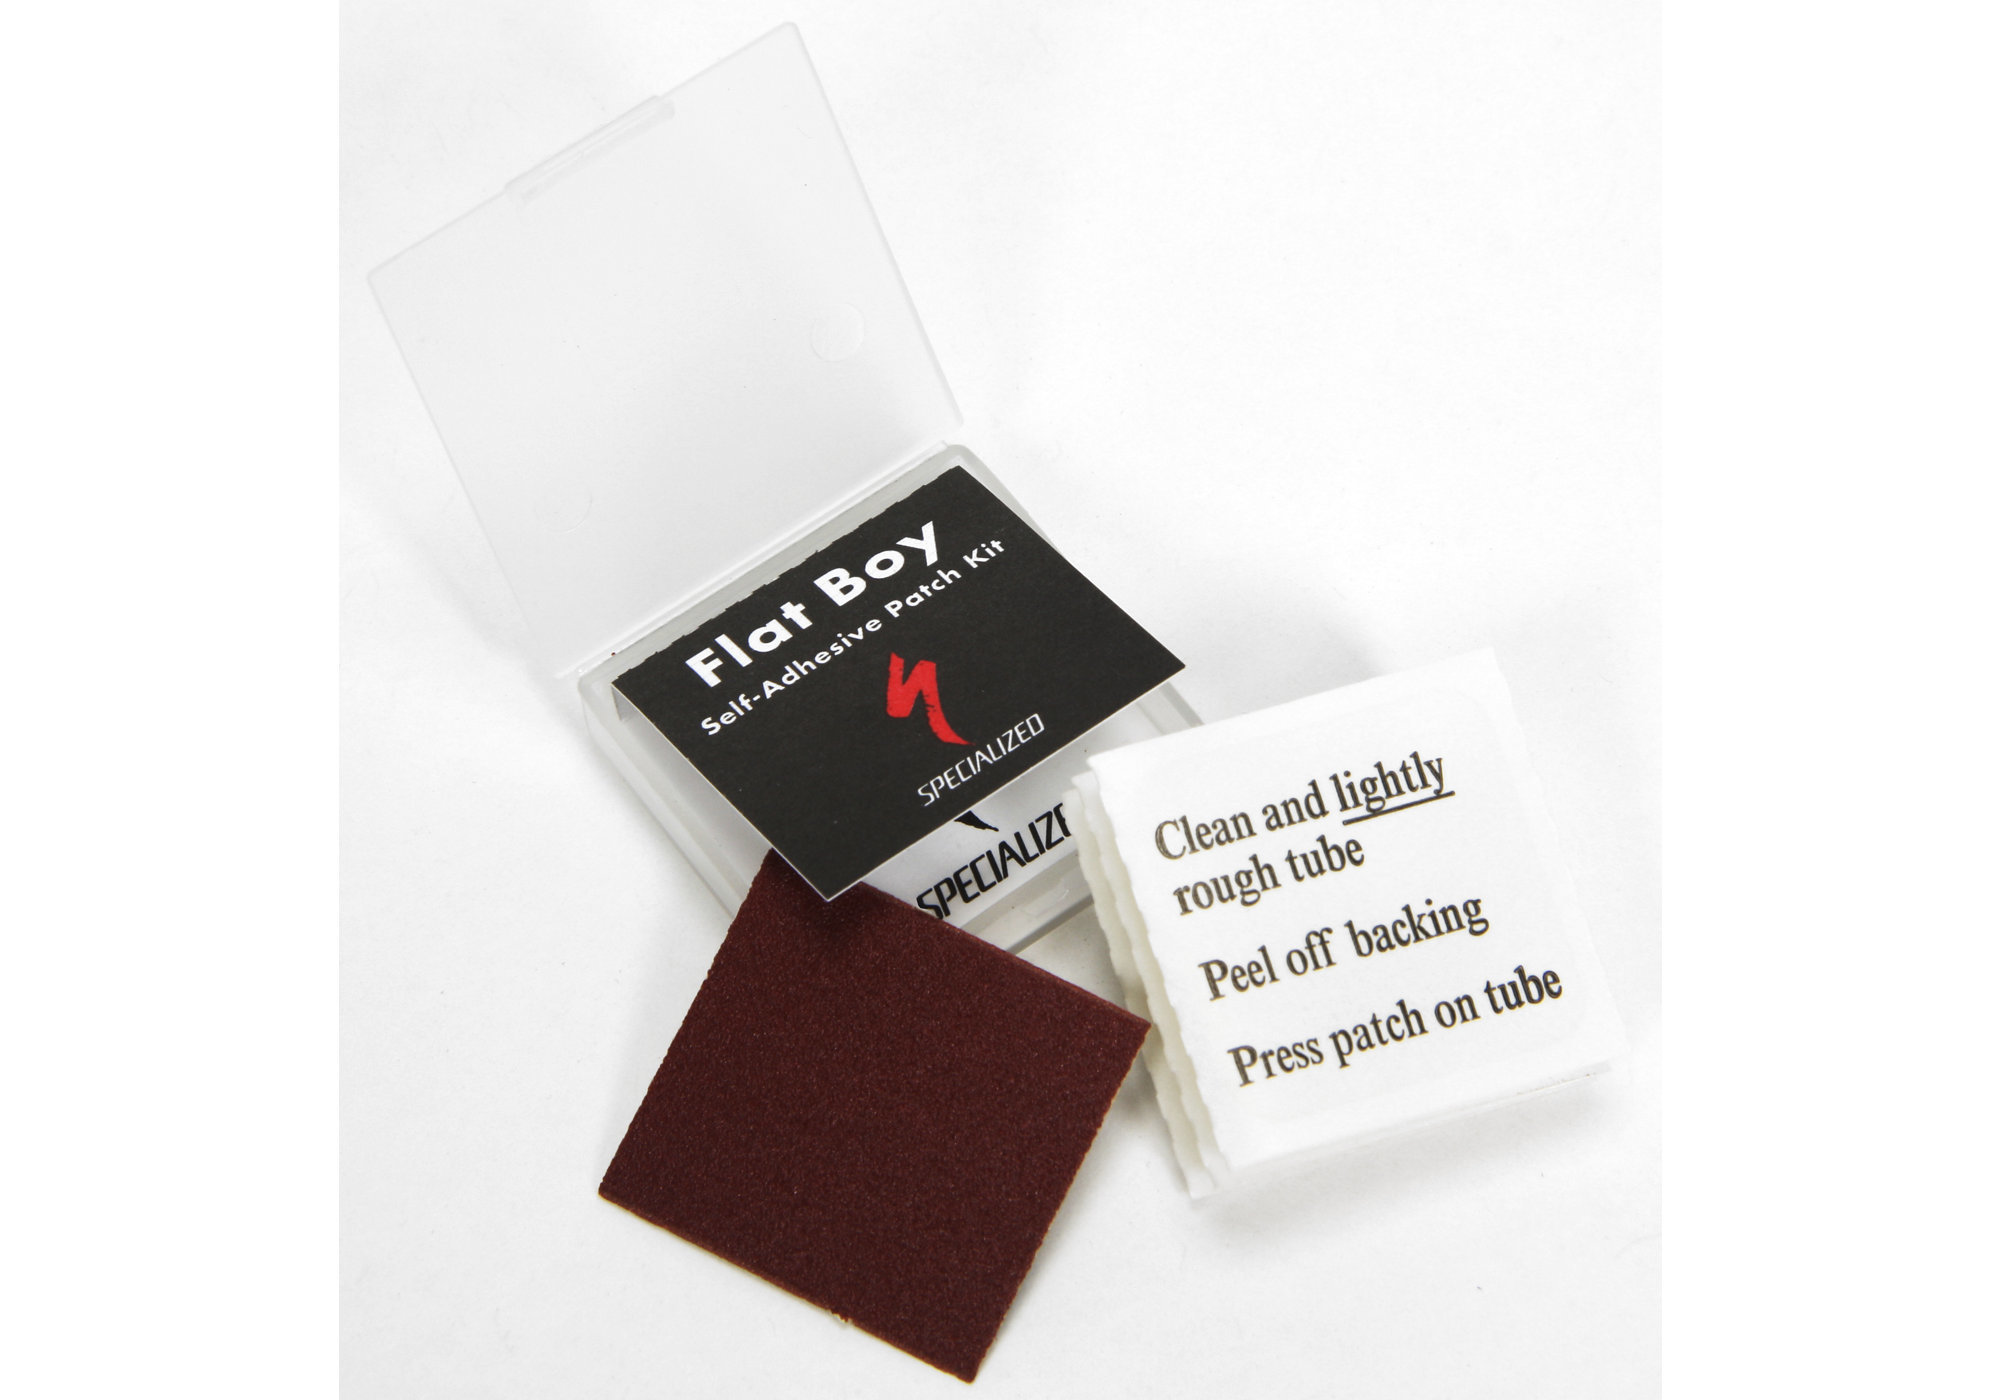 bicycle patch kit instructions